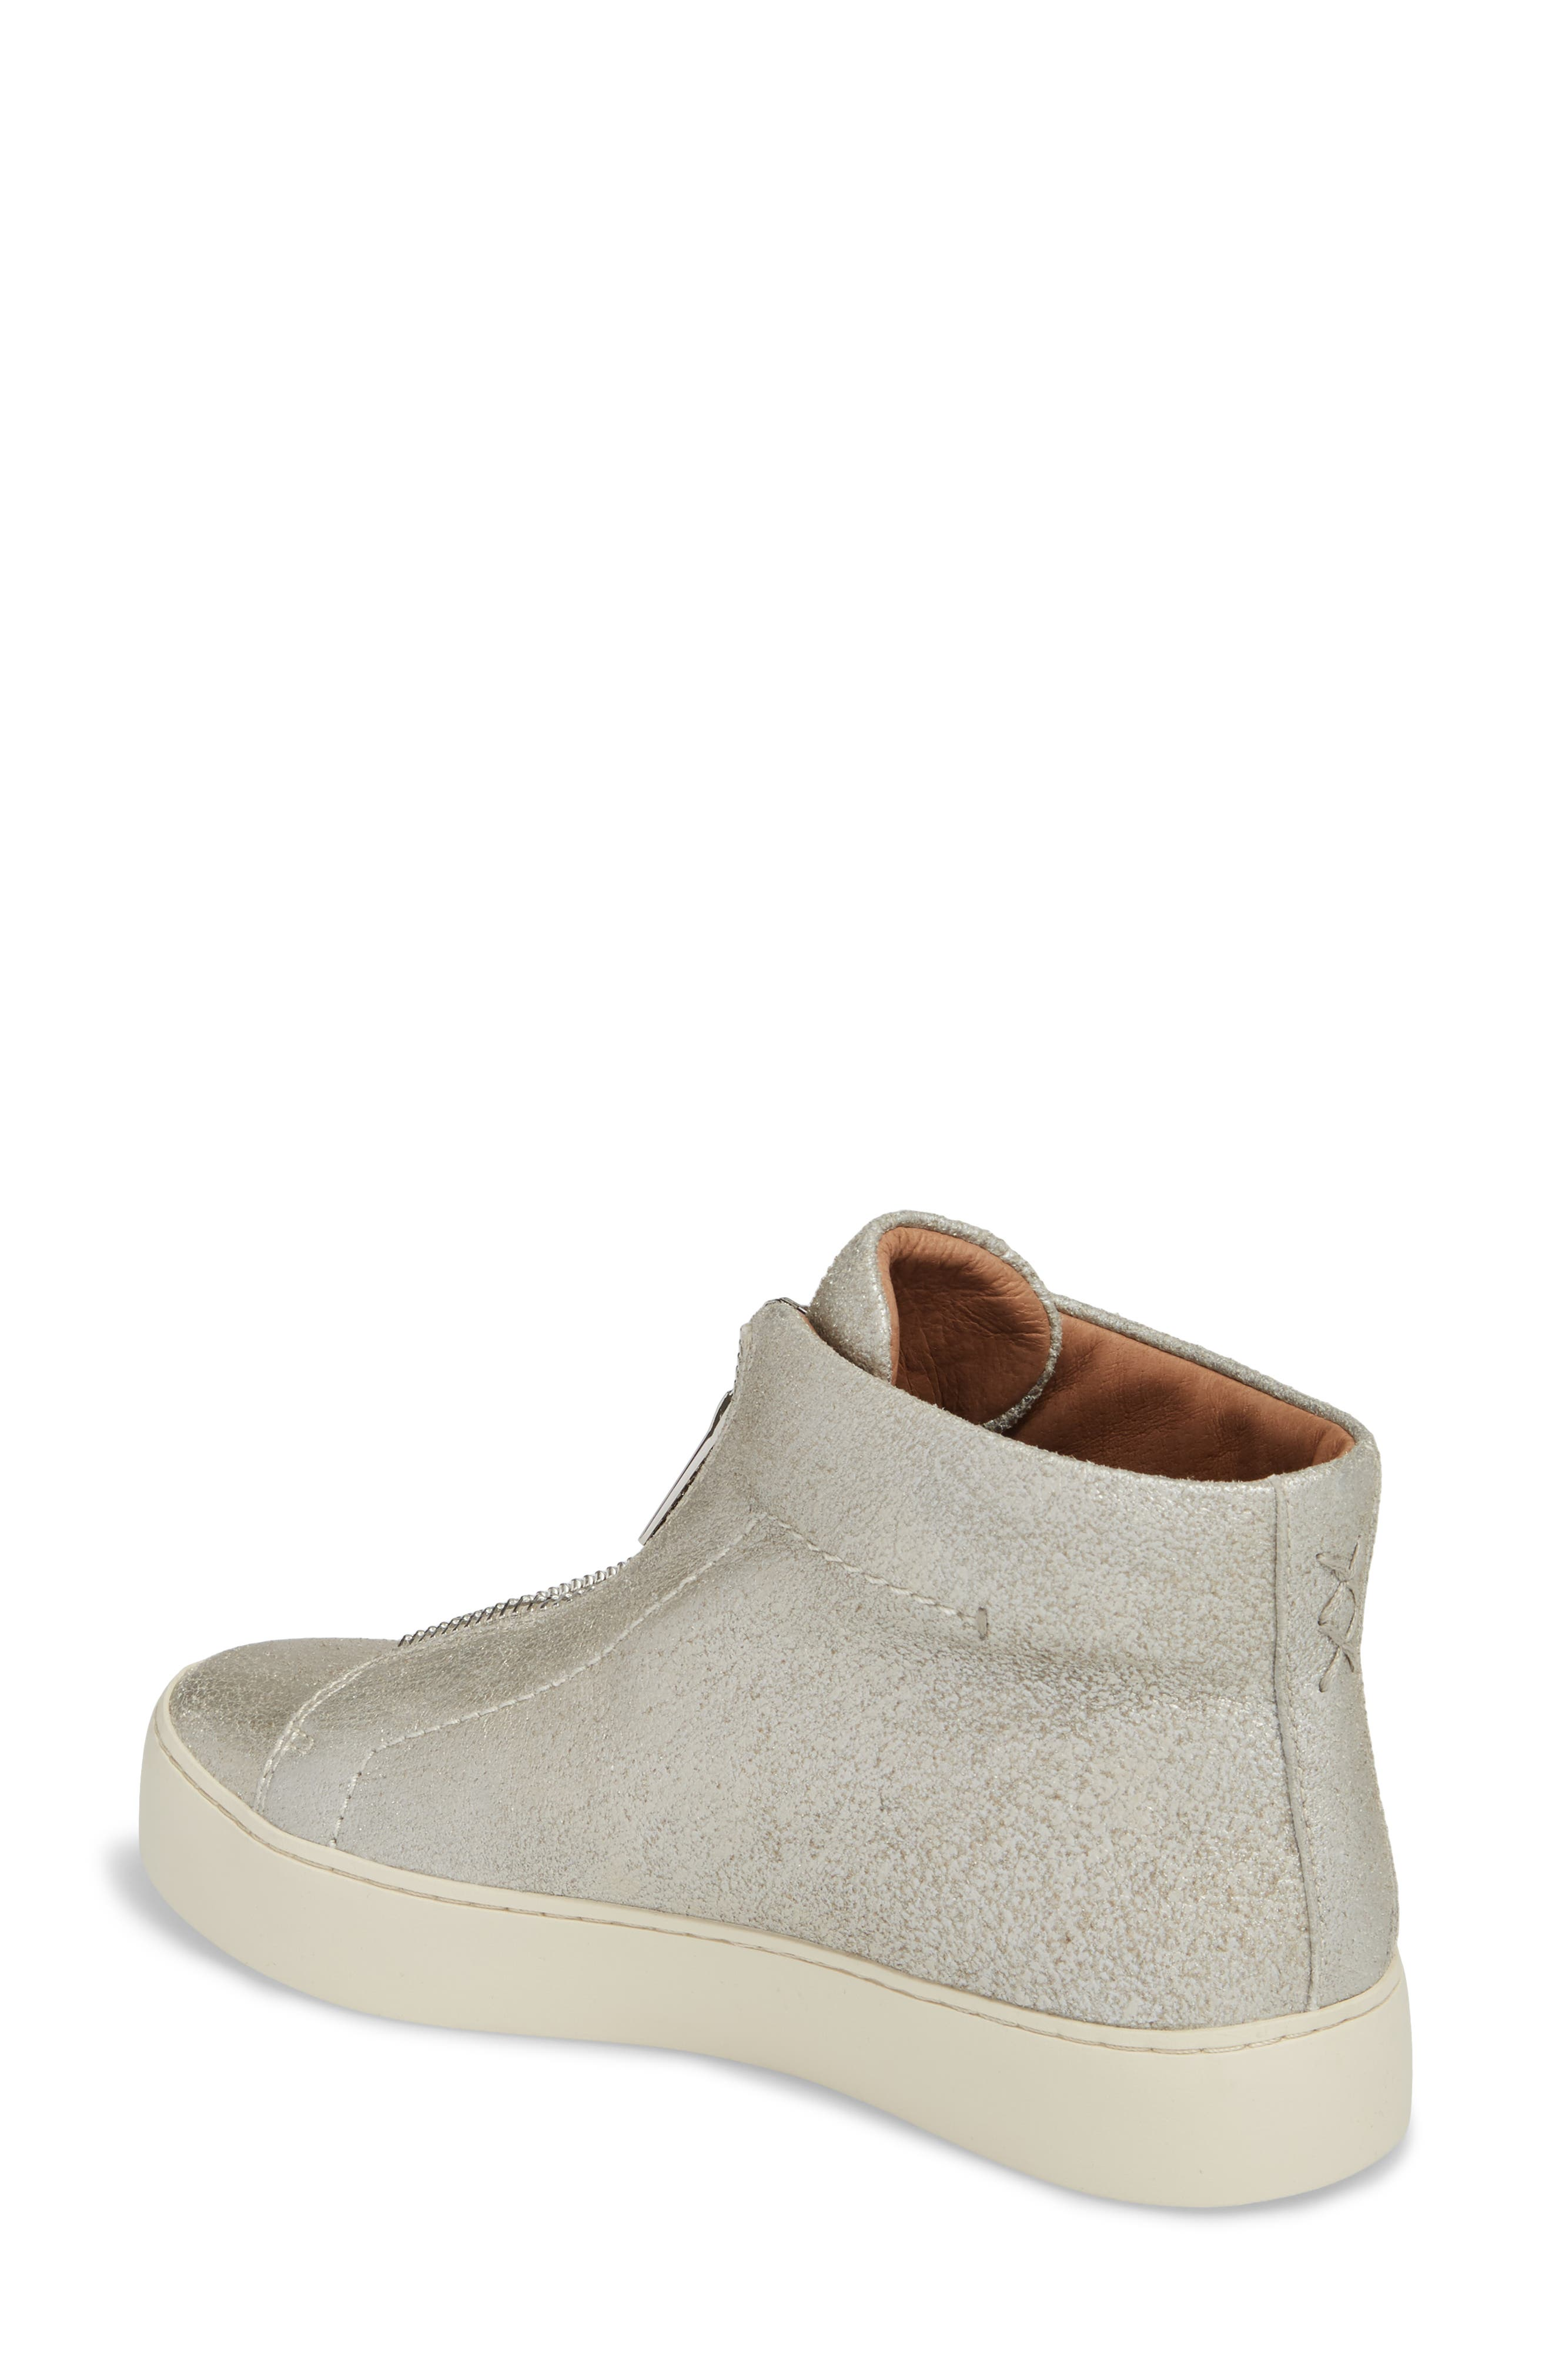 Lena Zip High Top Sneaker,                             Alternate thumbnail 2, color,